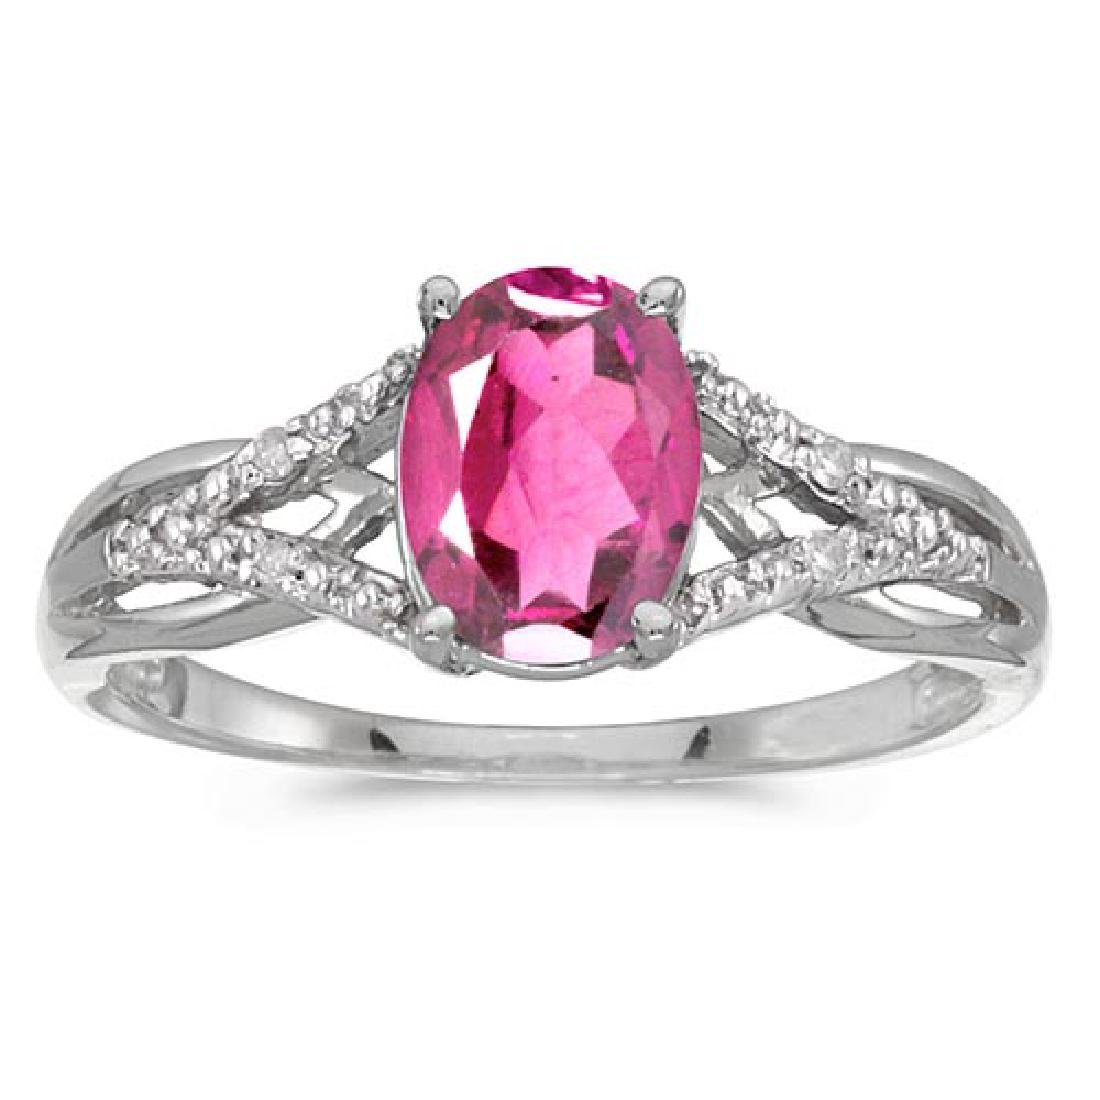 Certified 14k White Gold Oval Pink Topaz And Diamond Ri